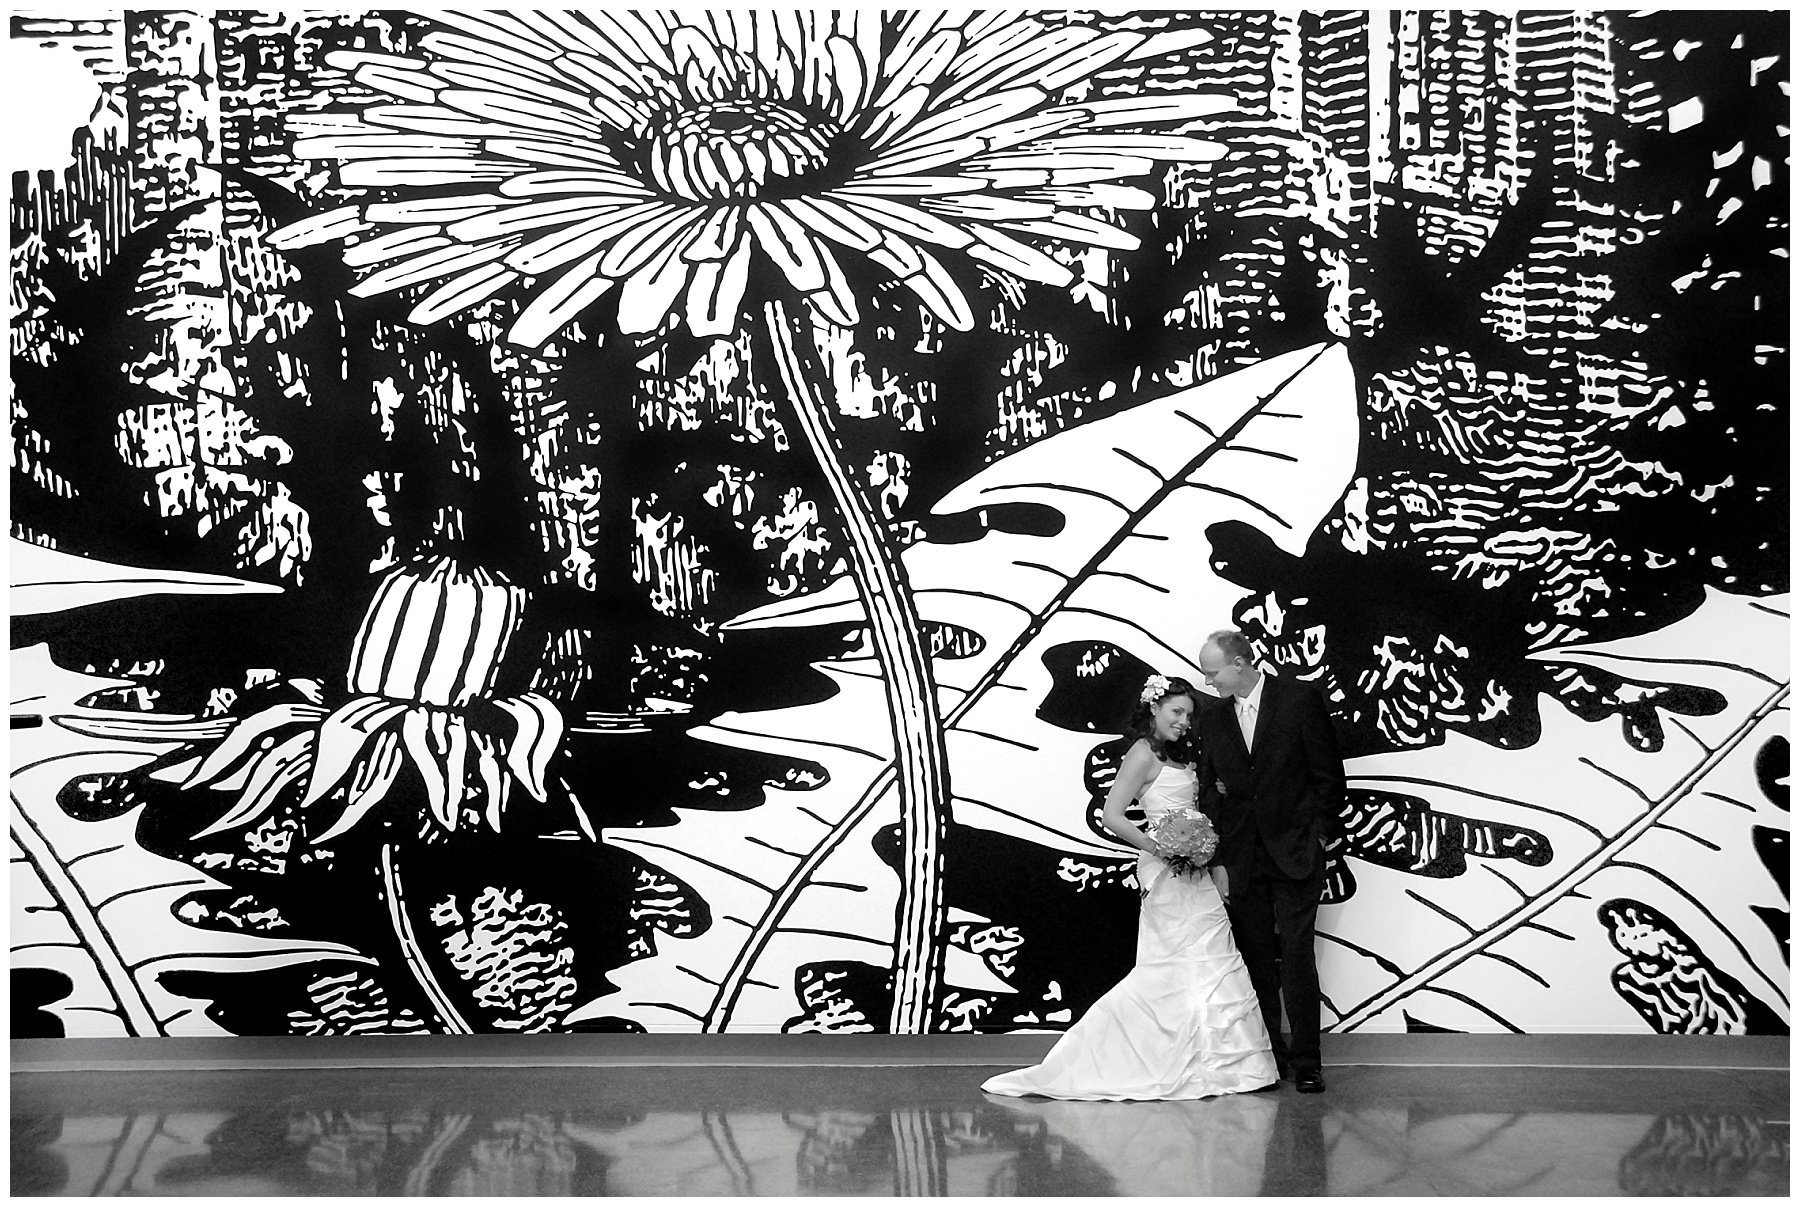 Our actual wedding day. We were married in the Las Vegas Art Museum. Our budget priorities were venue, food, and everything else was a distant second. Plastic plates and handmade centerpieces, sure. This mural by artist Paul Morrison was worth it. Photography by  Sue Altenburg .